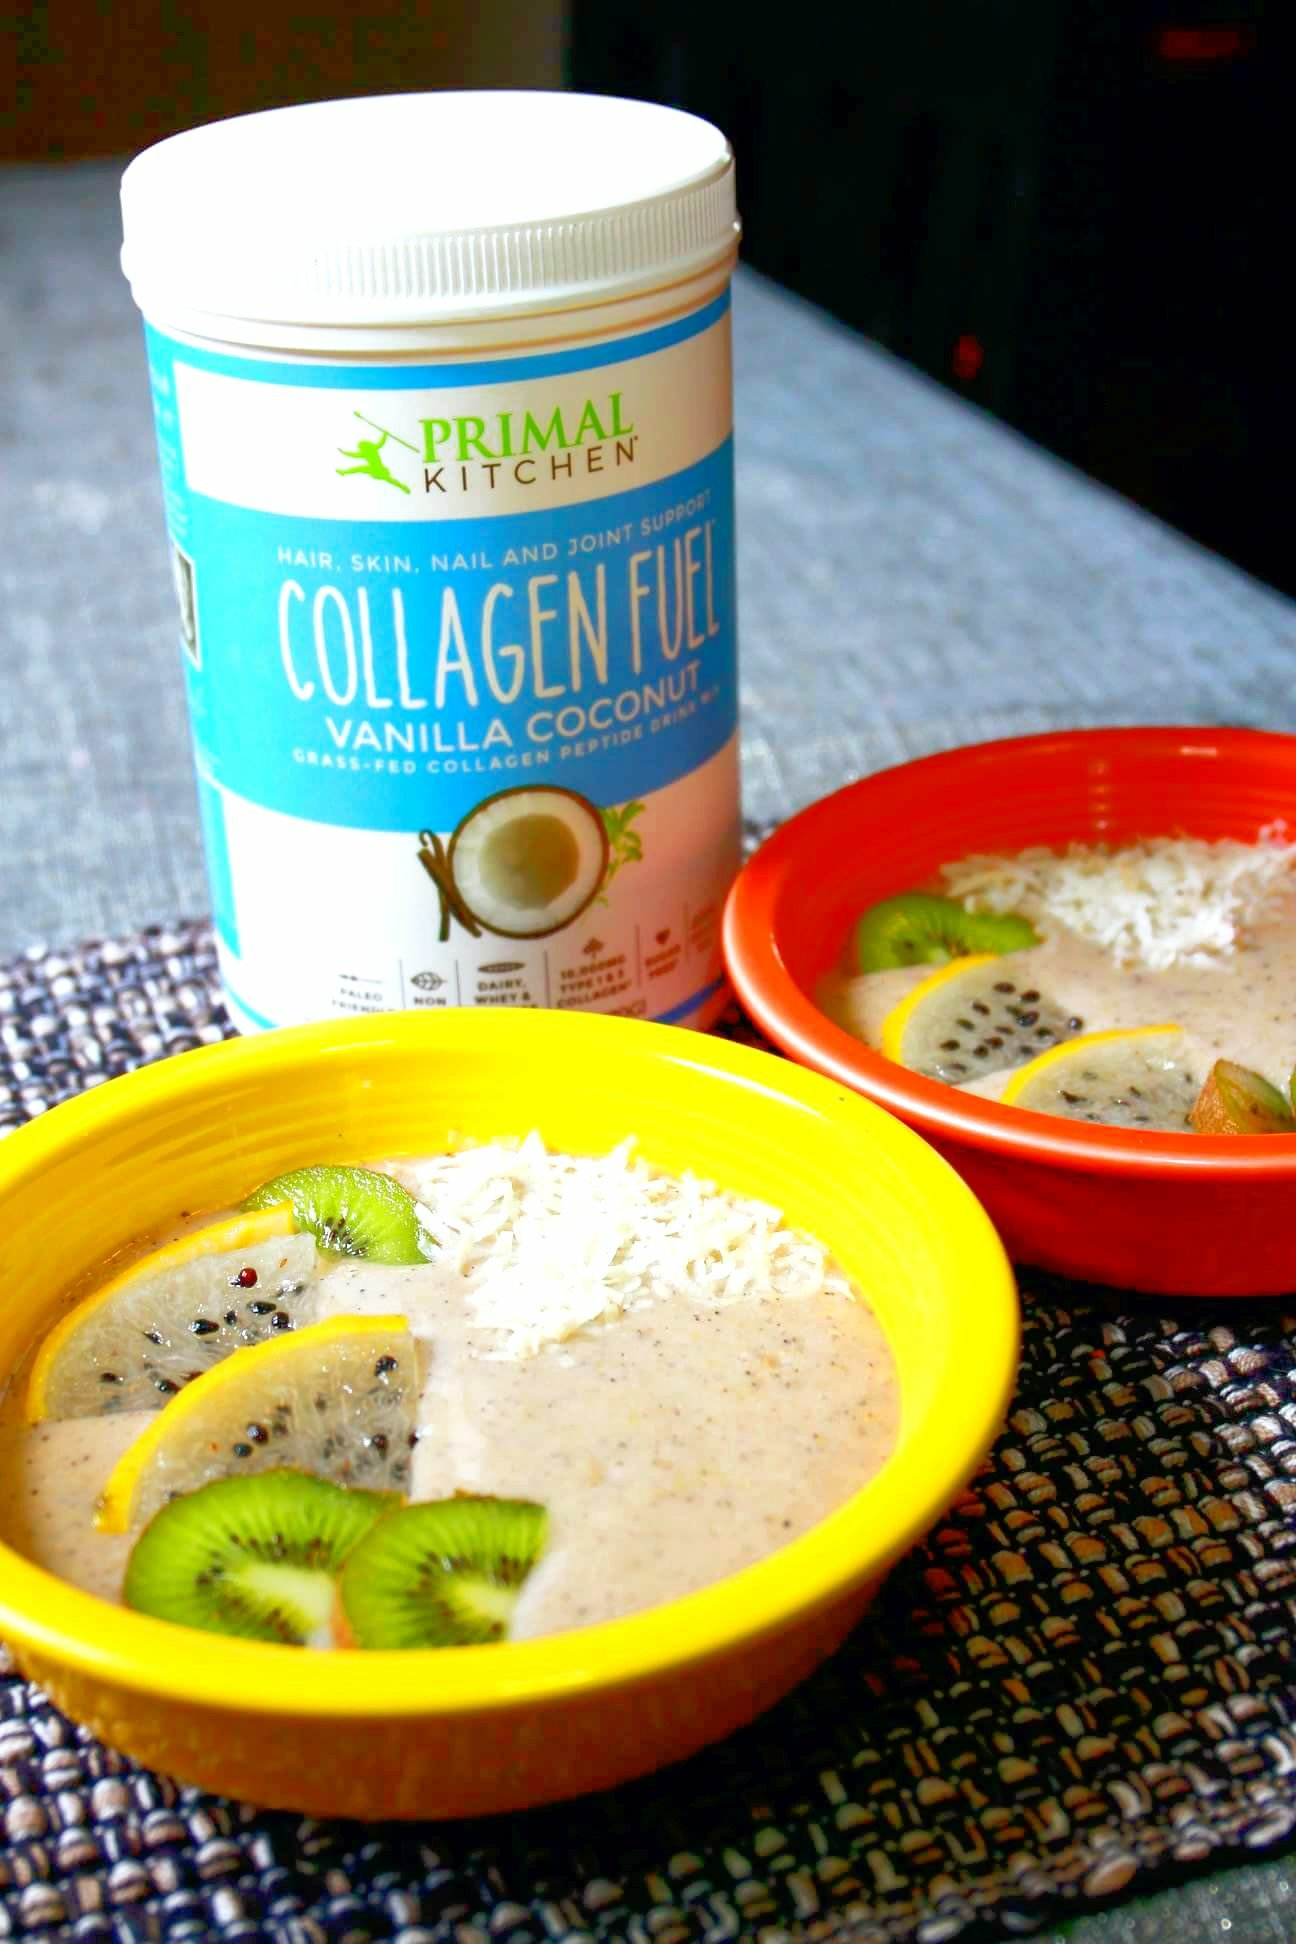 20180806 1446351105229381 - Primal Kitchen Collagen Fuel - Smoothie RECIPE - Tried It Tuesday